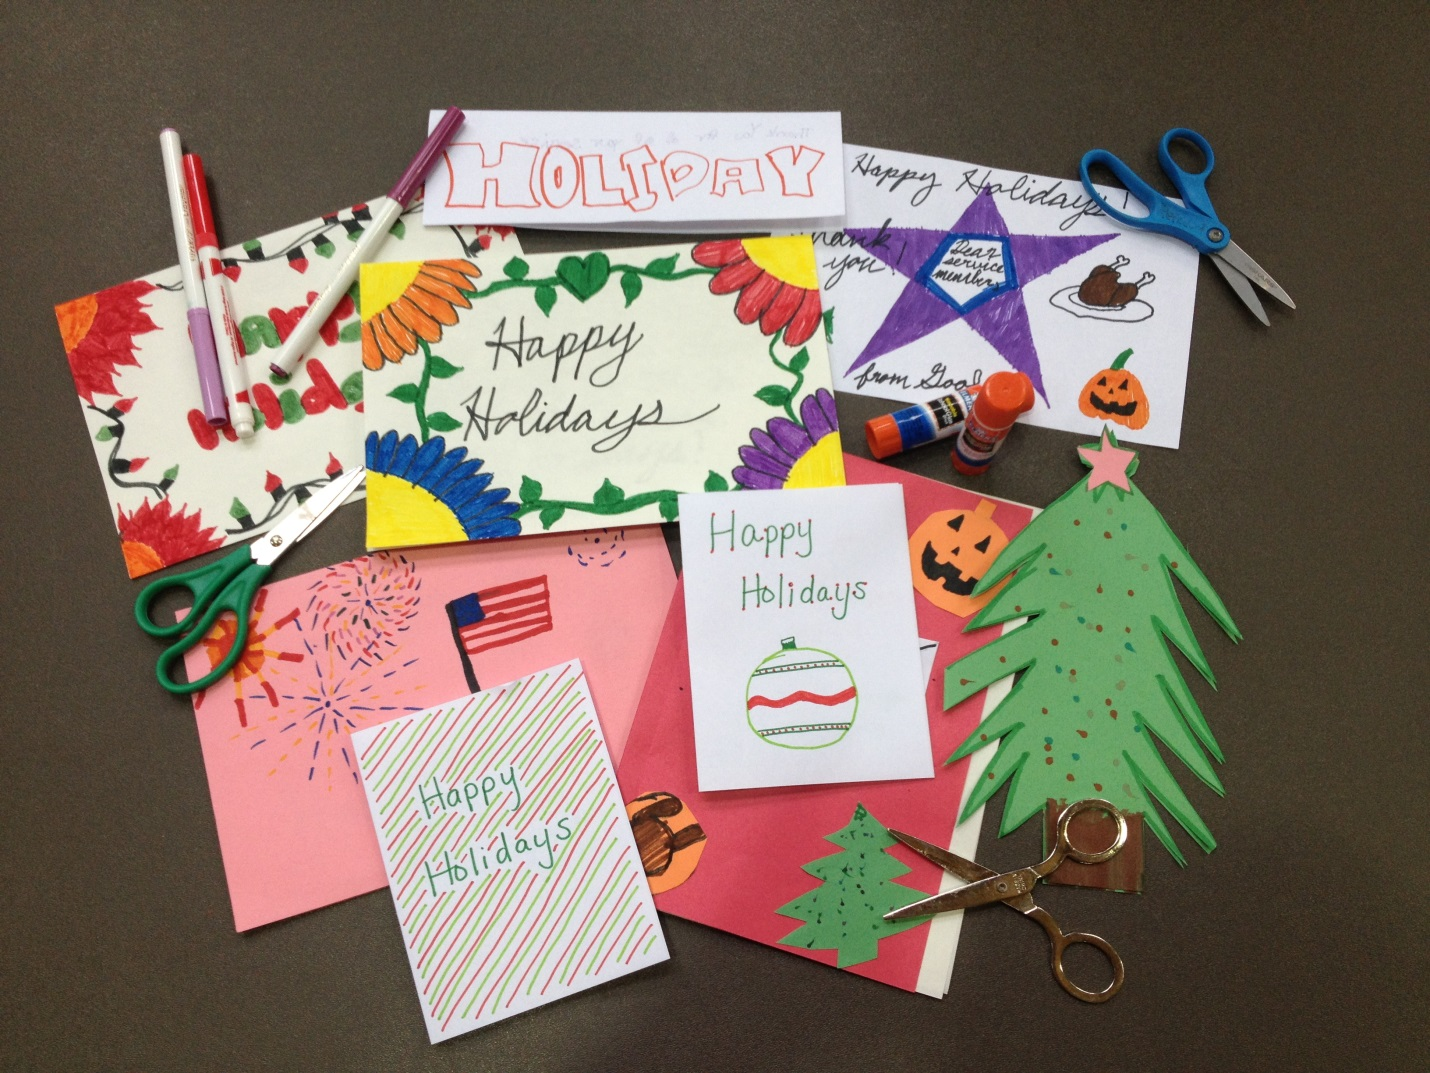 Holiday Mail for Heroes Kicks Off – American Red Cross Northwest Region